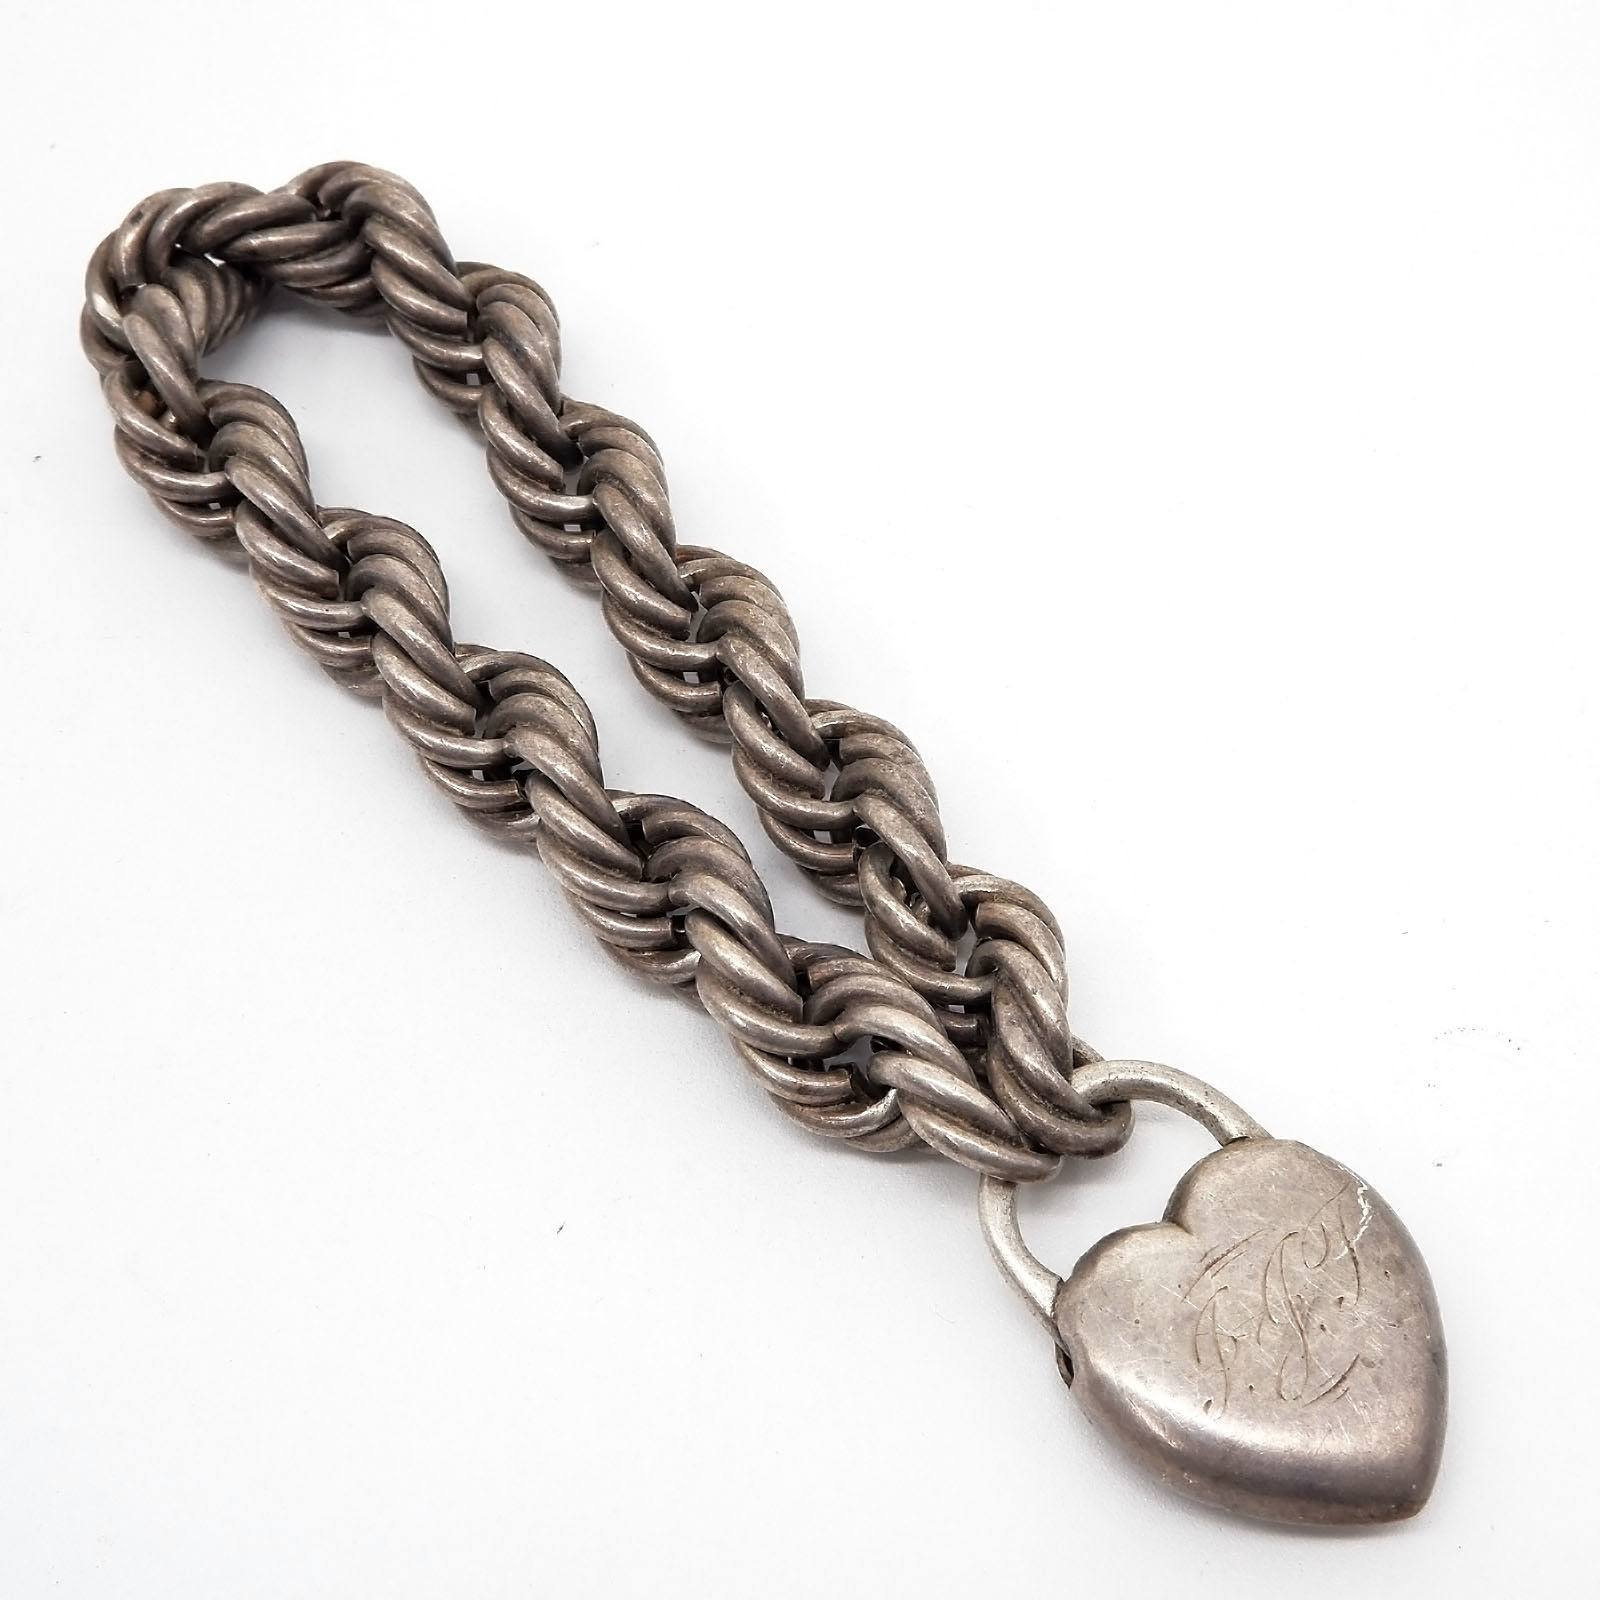 'Monogrammed Sterling Silver Hollow Twisted Rope Bracelet with Heart Lock'